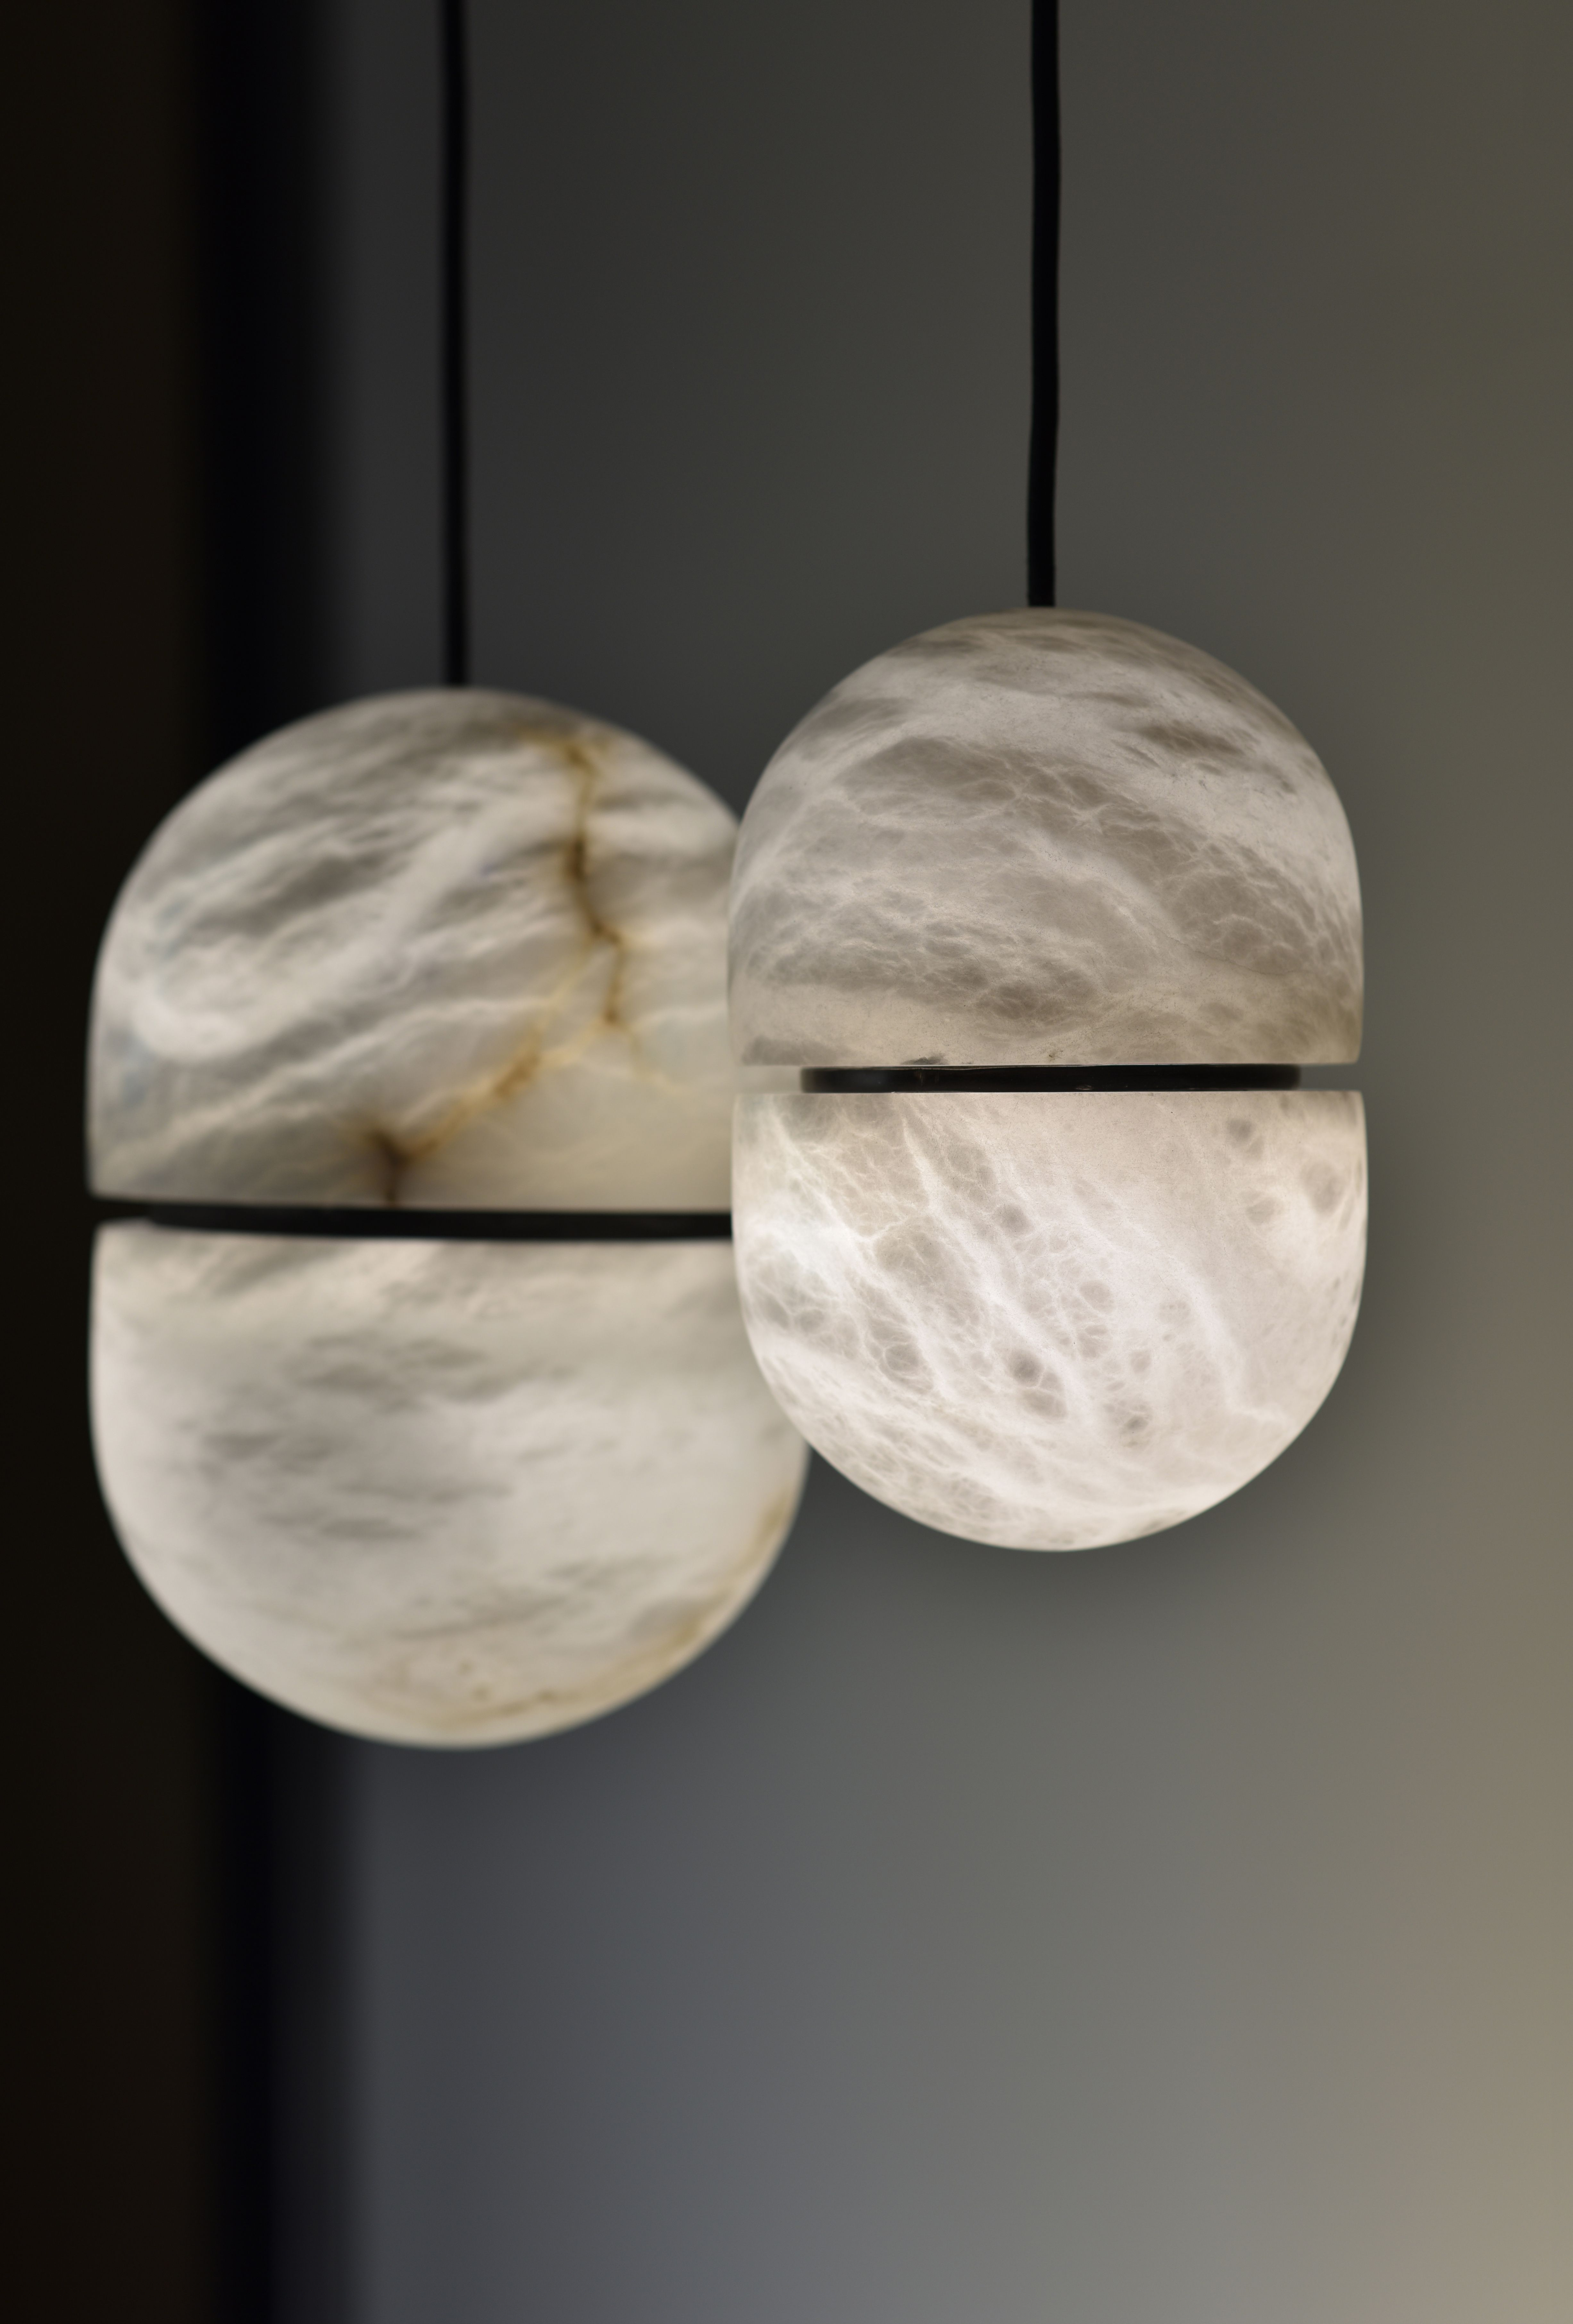 Discover chandelier yum a lighting fixture from our new 2017 collection made up of stunning alabaster capsules aae chandelier alabaster